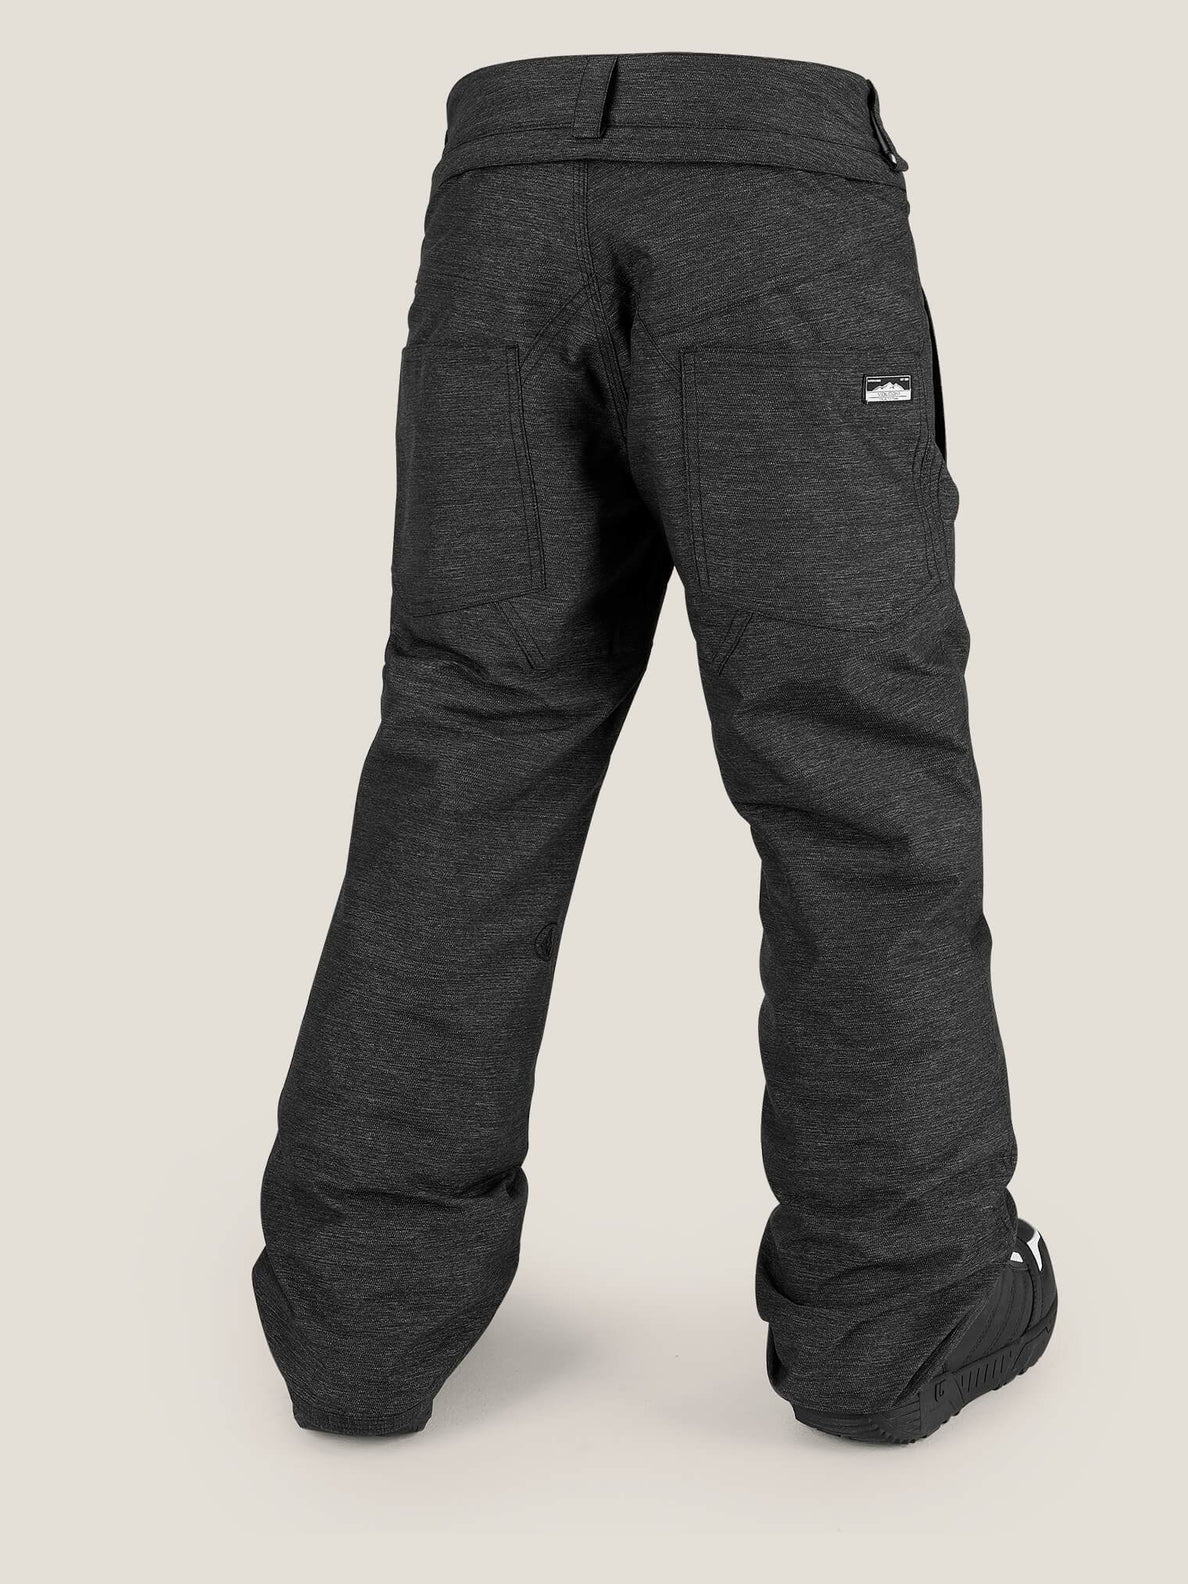 Explorer Insulated Pant In Black, Back View